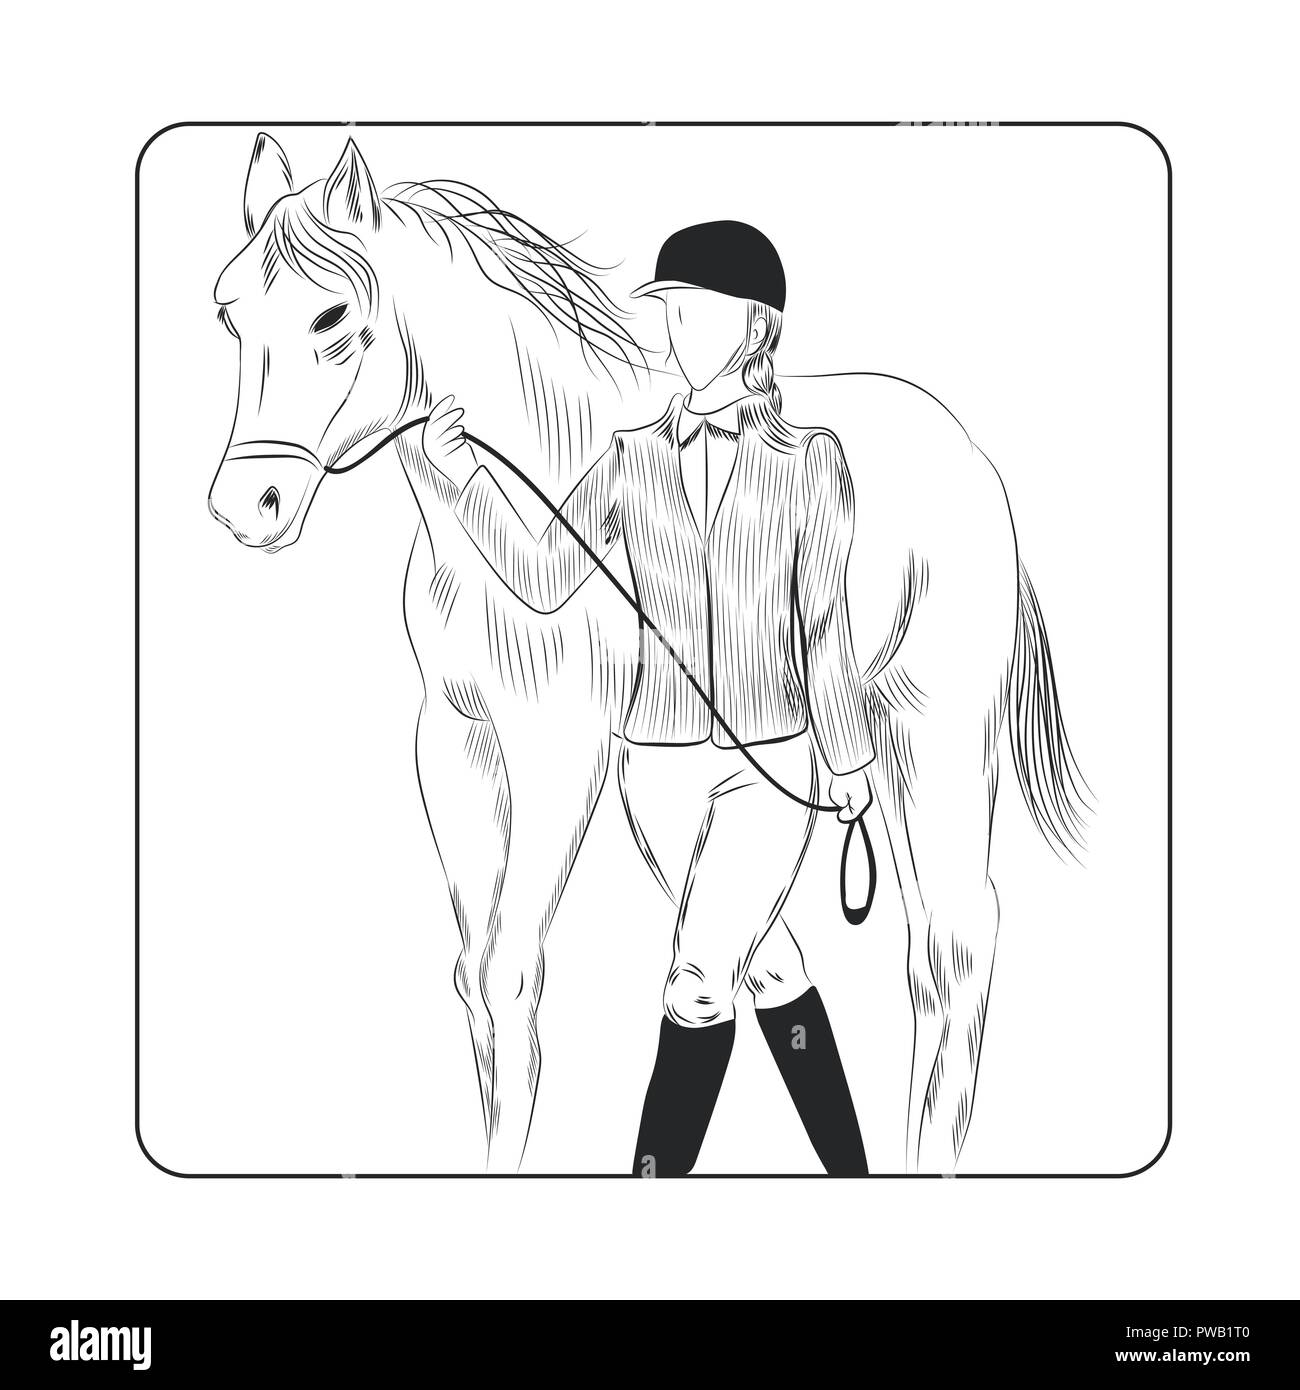 Jockey woman and horse hand drawn illustration. Outline woman in jockey uniform holding reins of a horse vector. - Stock Image